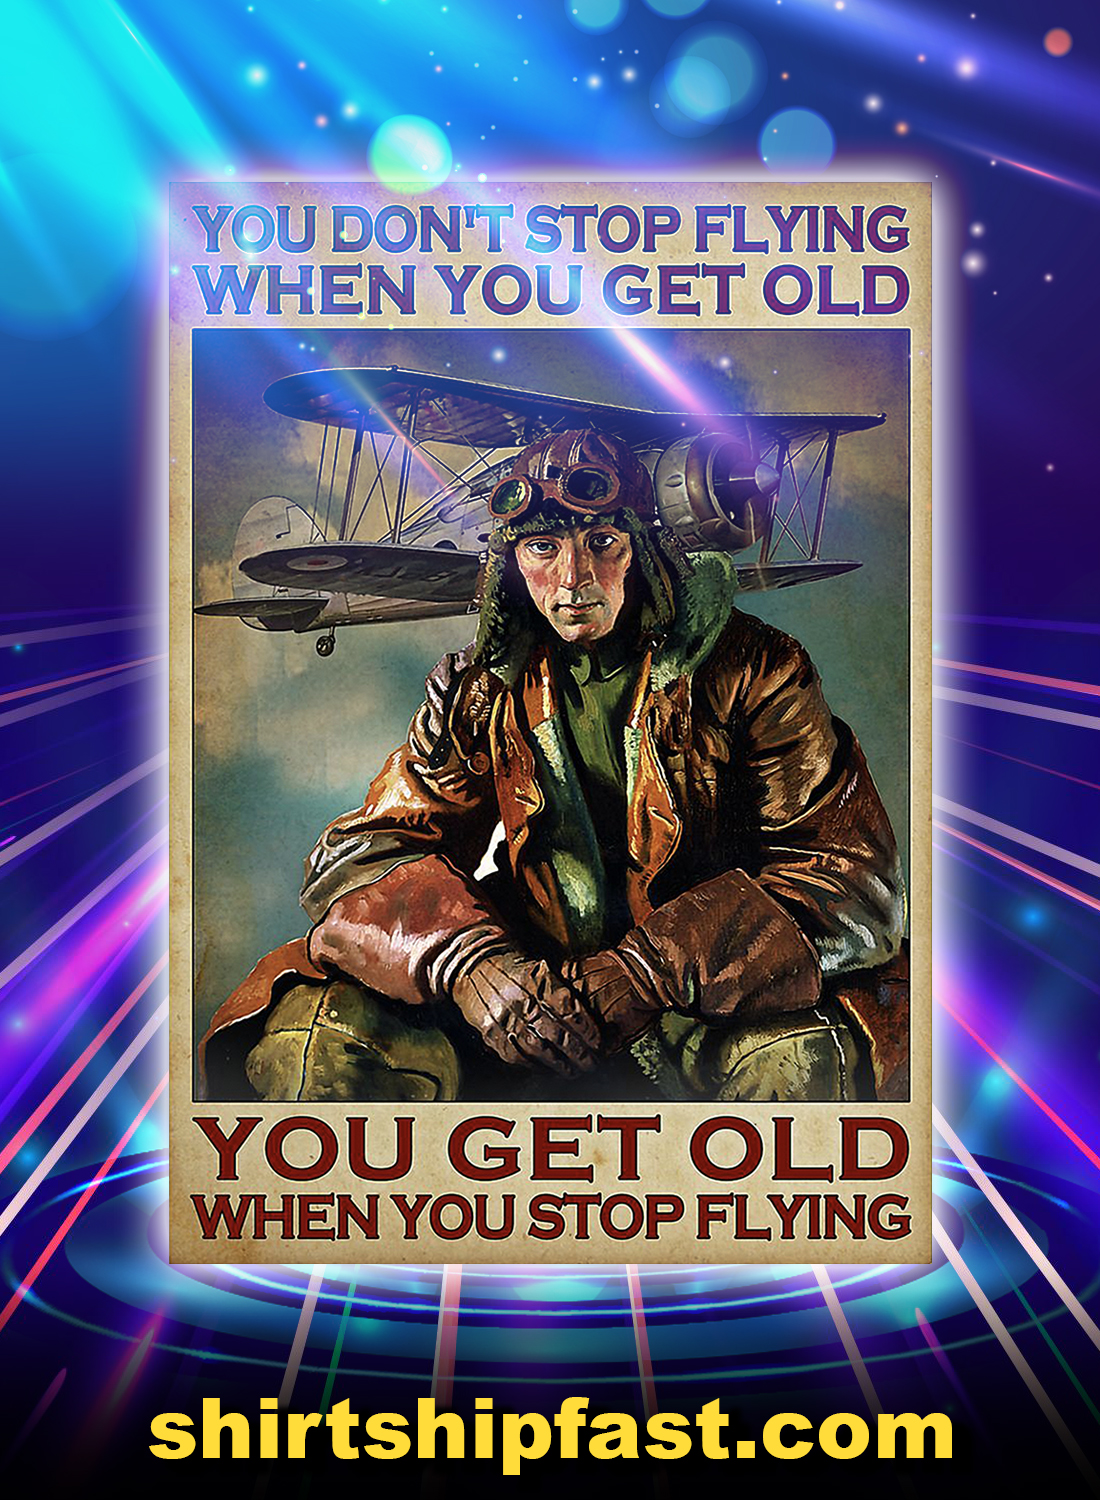 You don't stop flying when you get old pilot poster